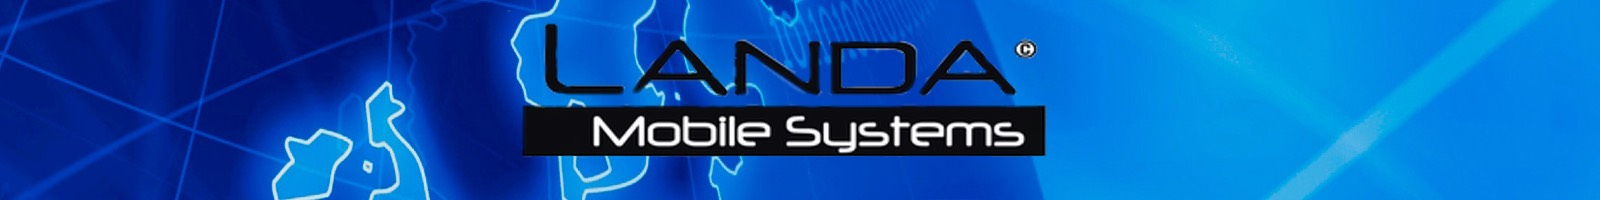 Landa Mobile Systems LLC pagelmslogobanner LMS 120 XHD MOBILE TOWER